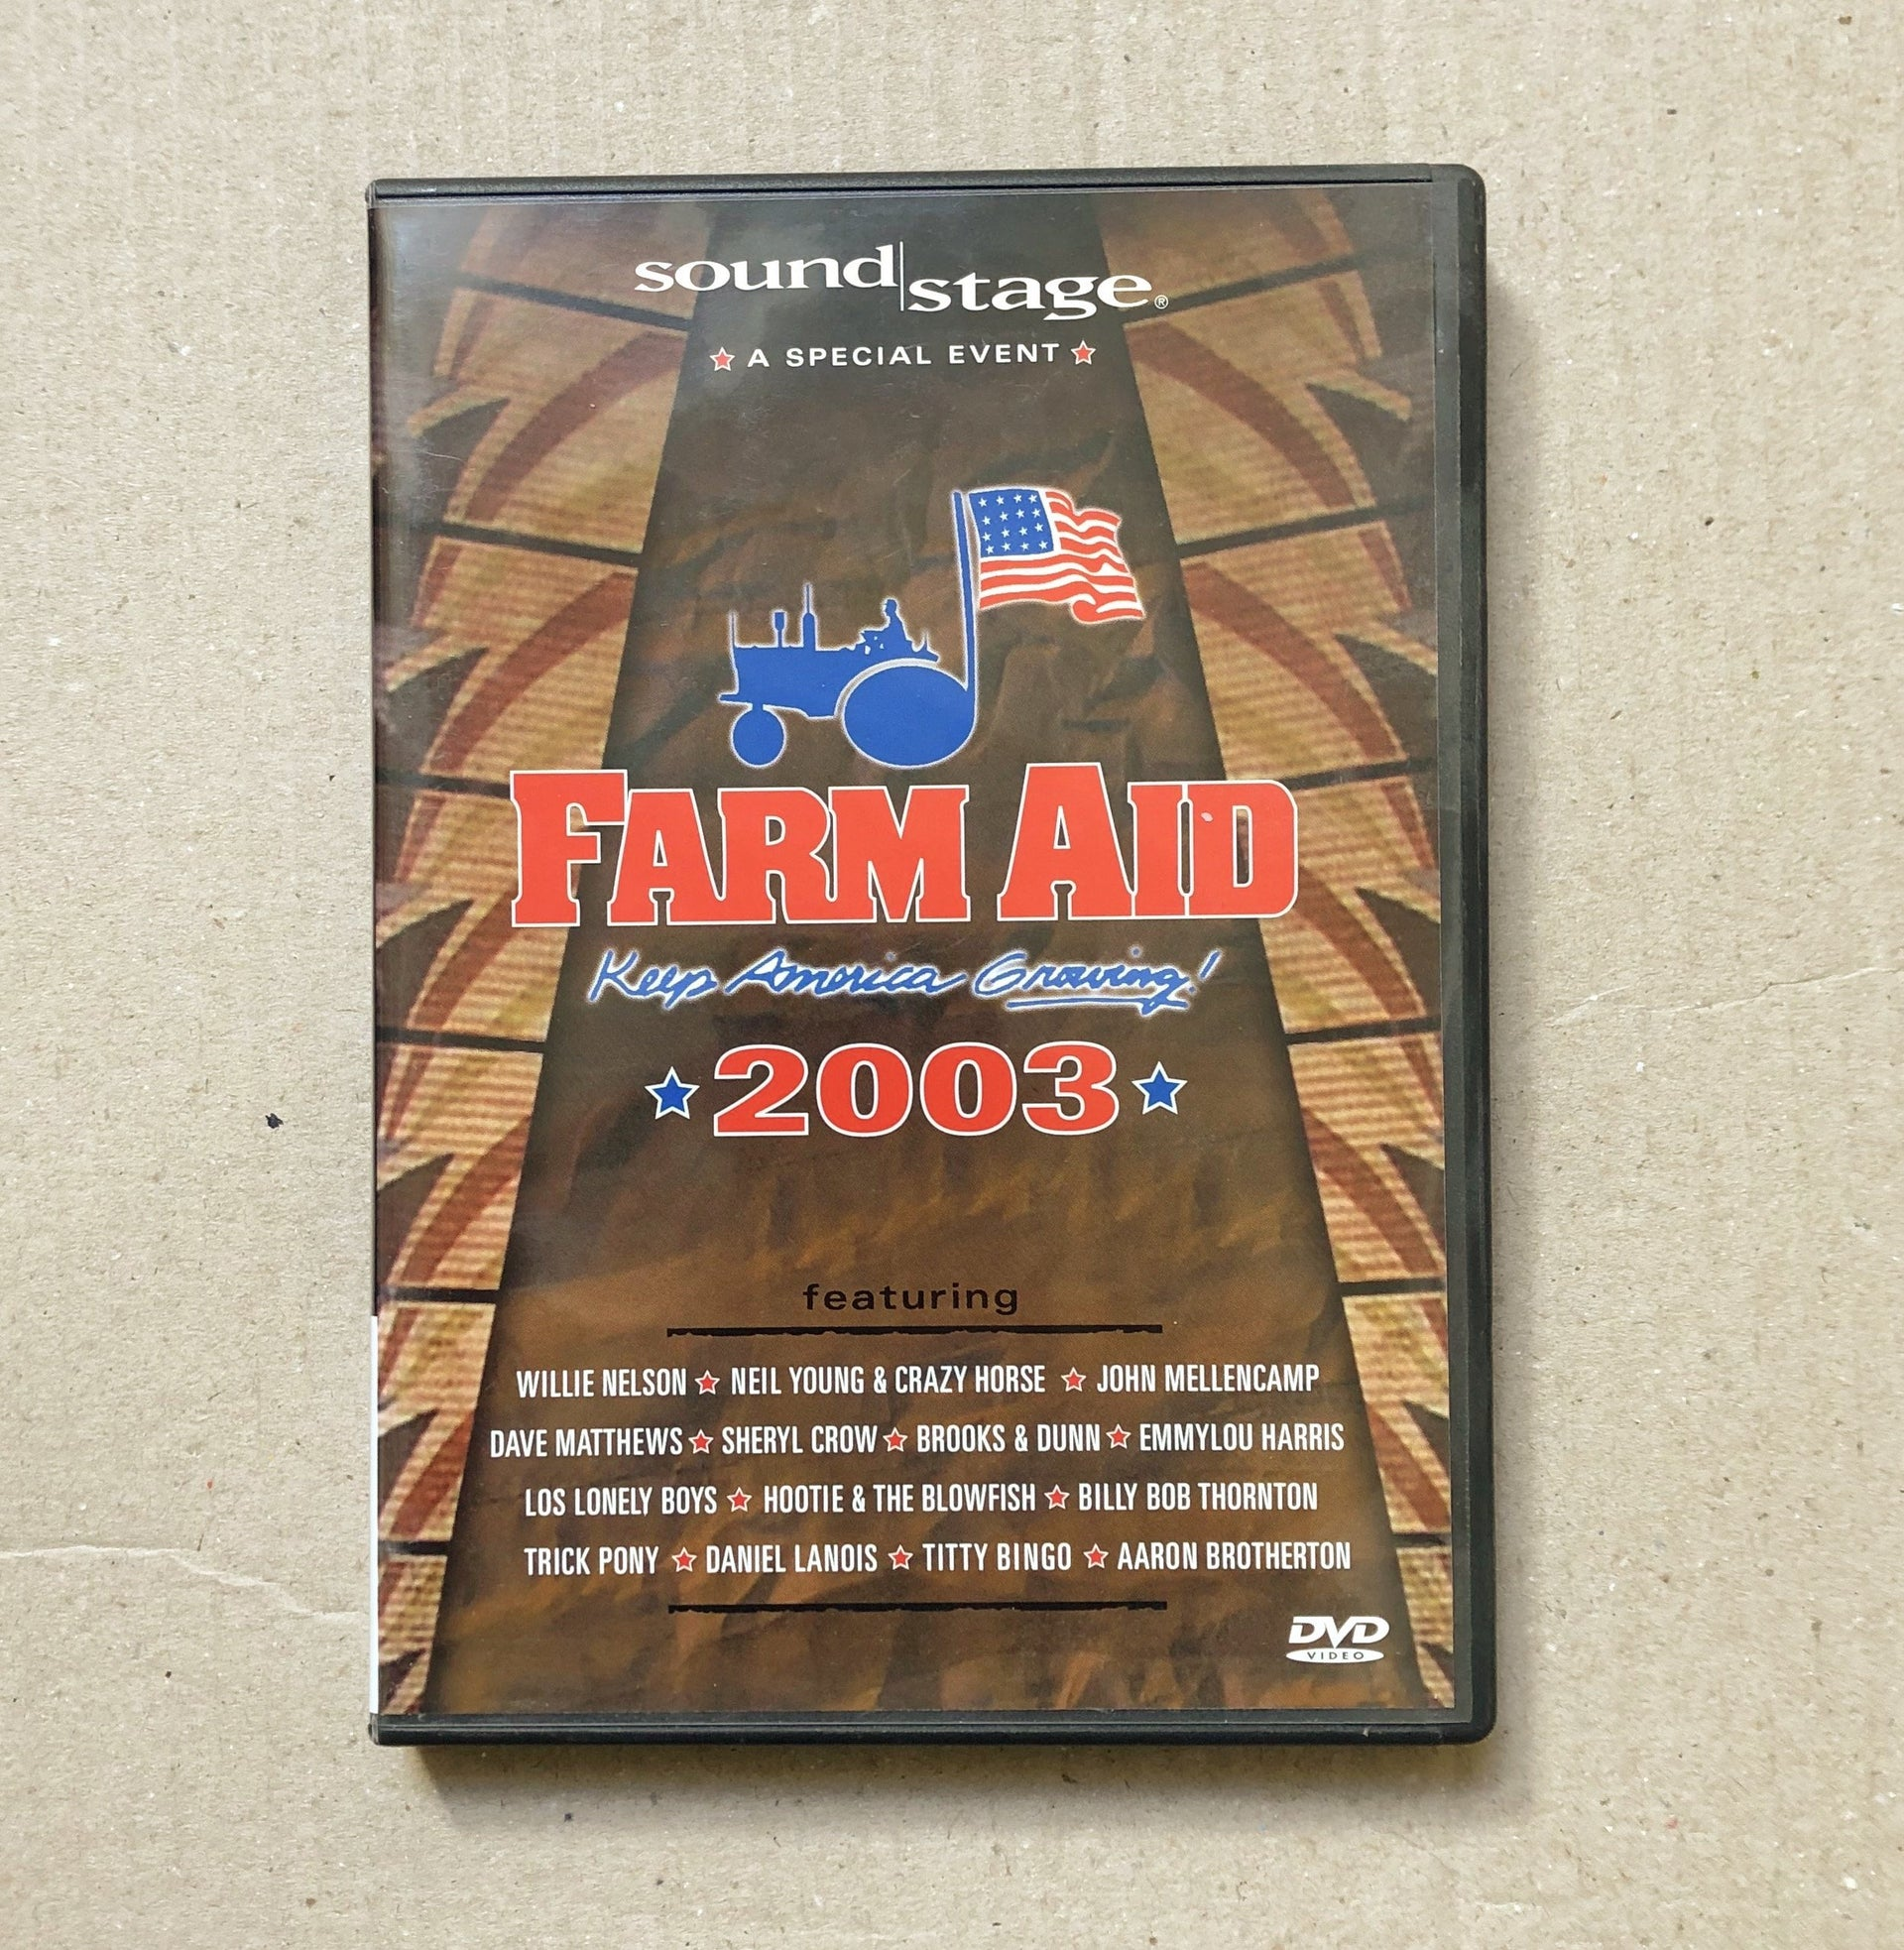 Farm Aid 2003 Concert DVD Set